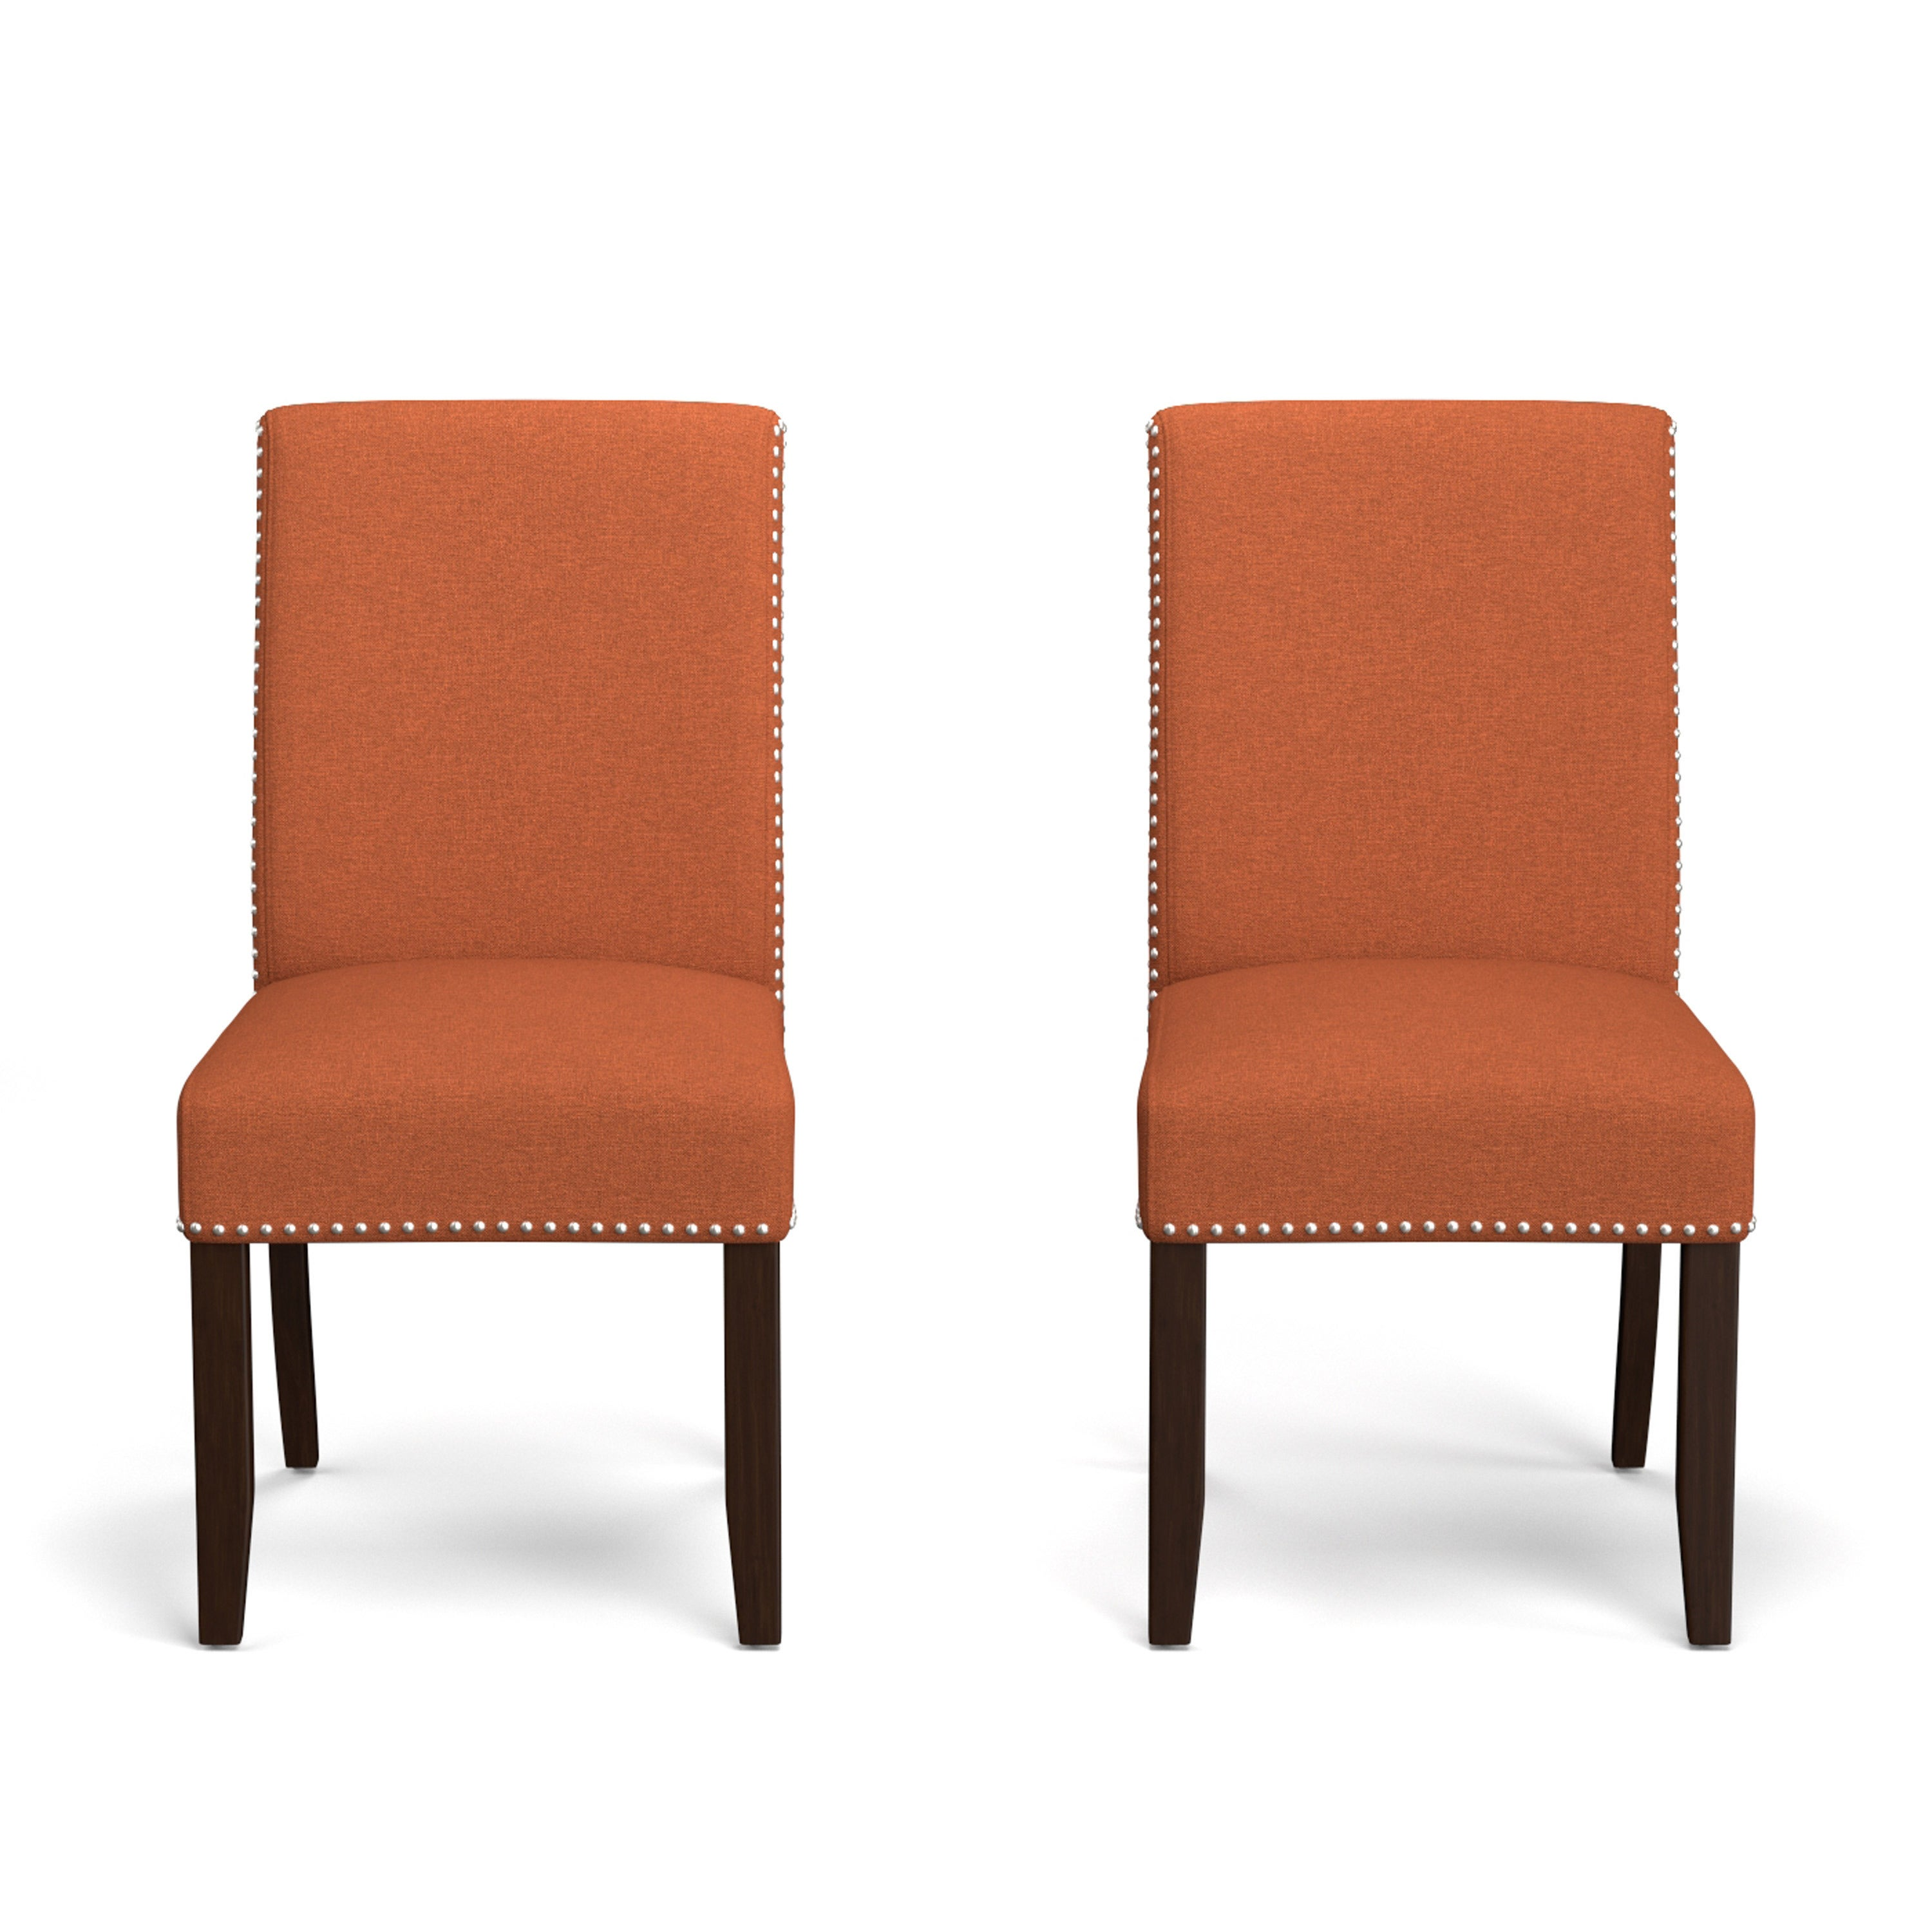 Clay Alder Home Alvord Orange Linen Upholstered Armless Dining Chairs